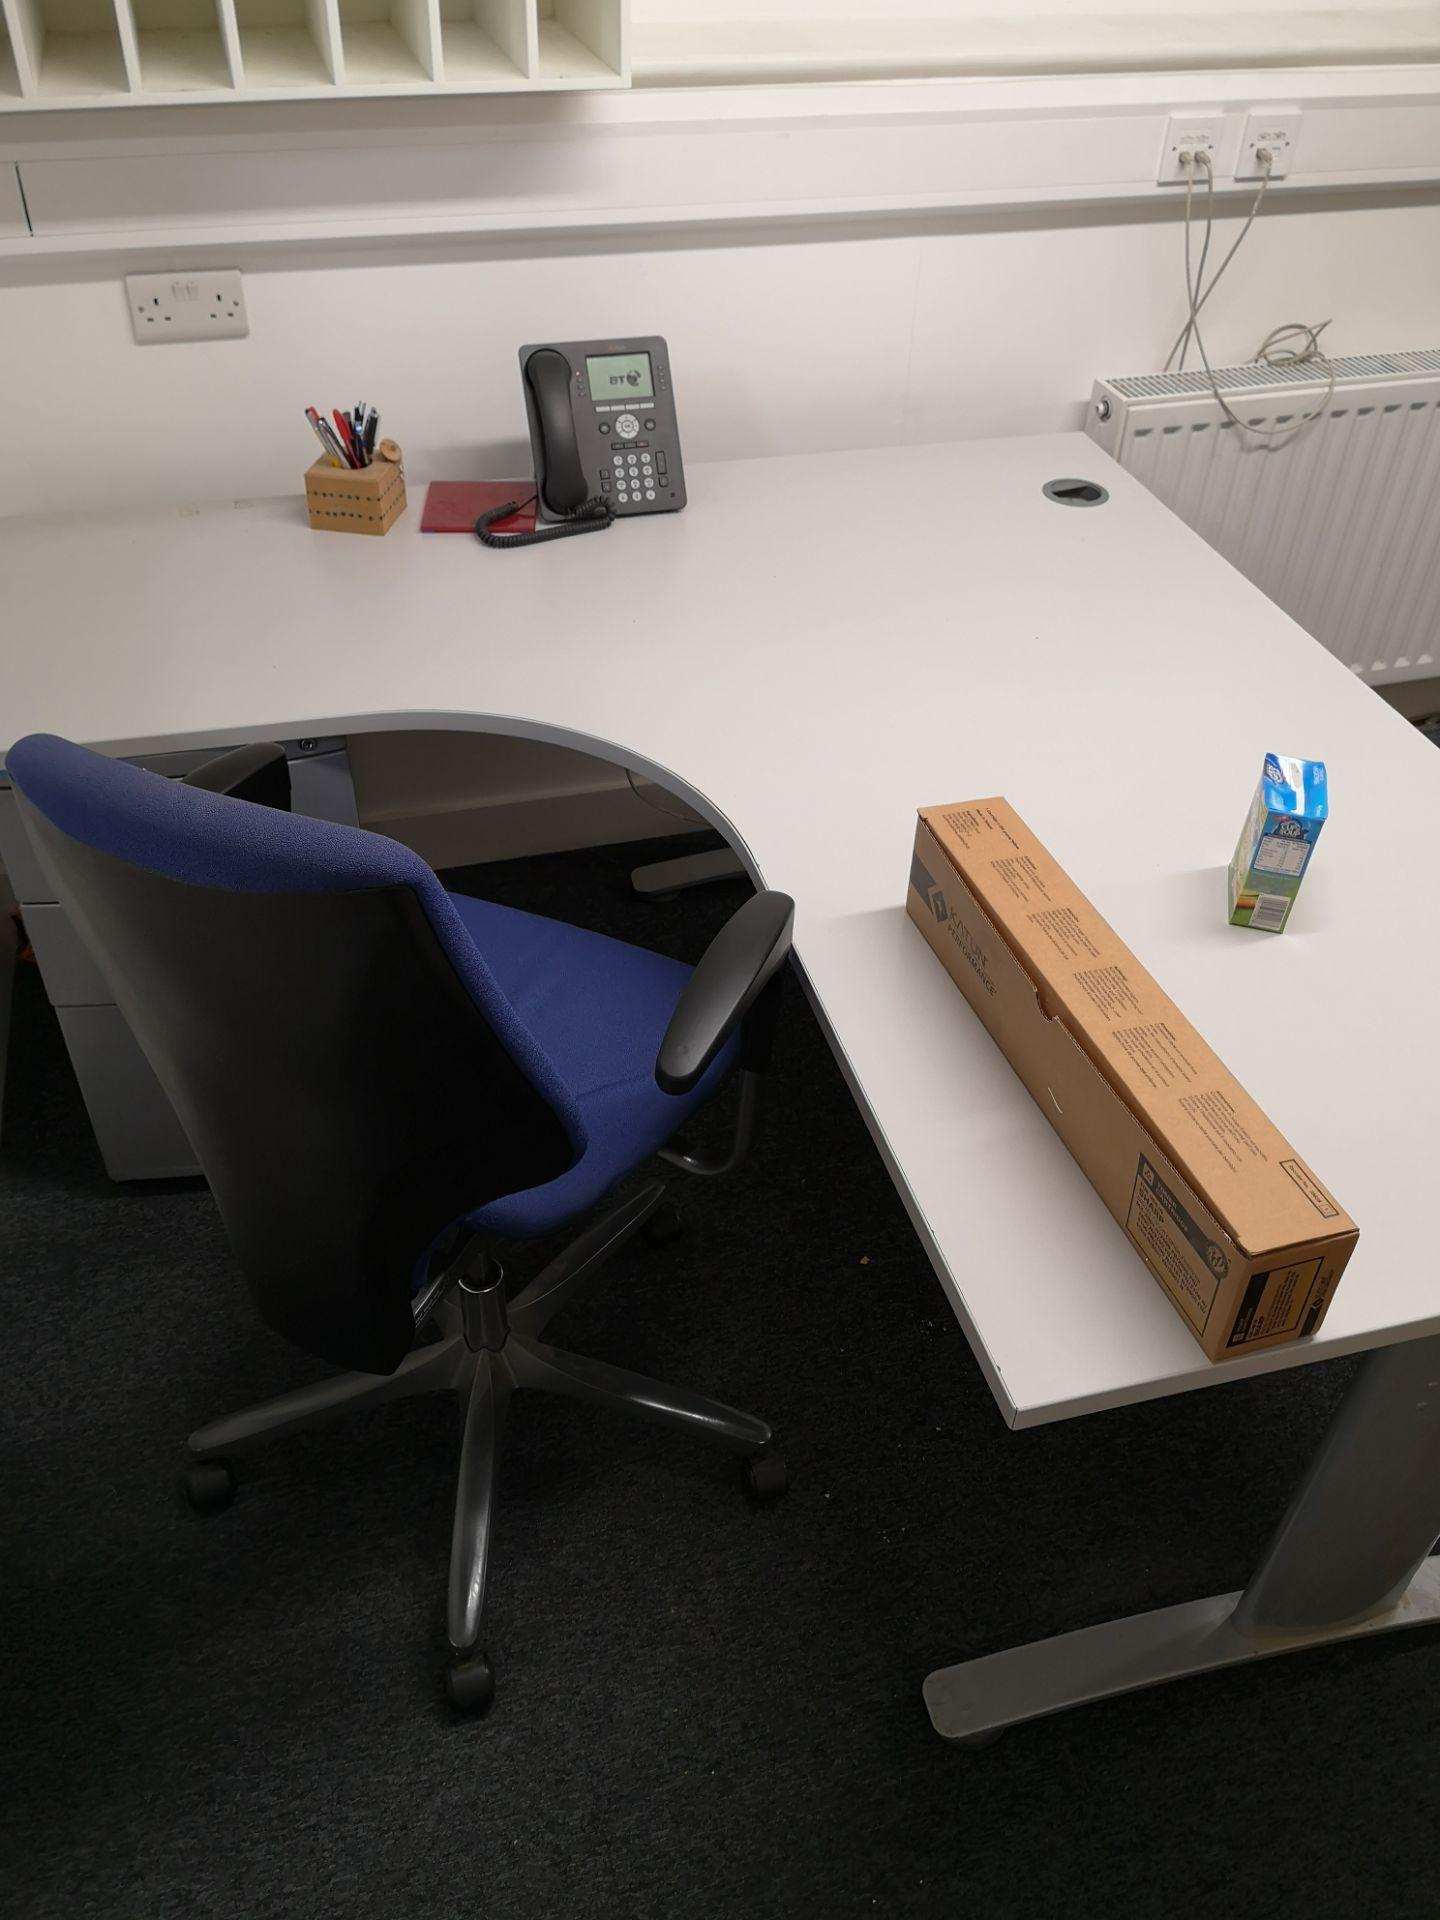 Lot 365 - Grey Workstation, with blue swivel chair (LOT LOCA